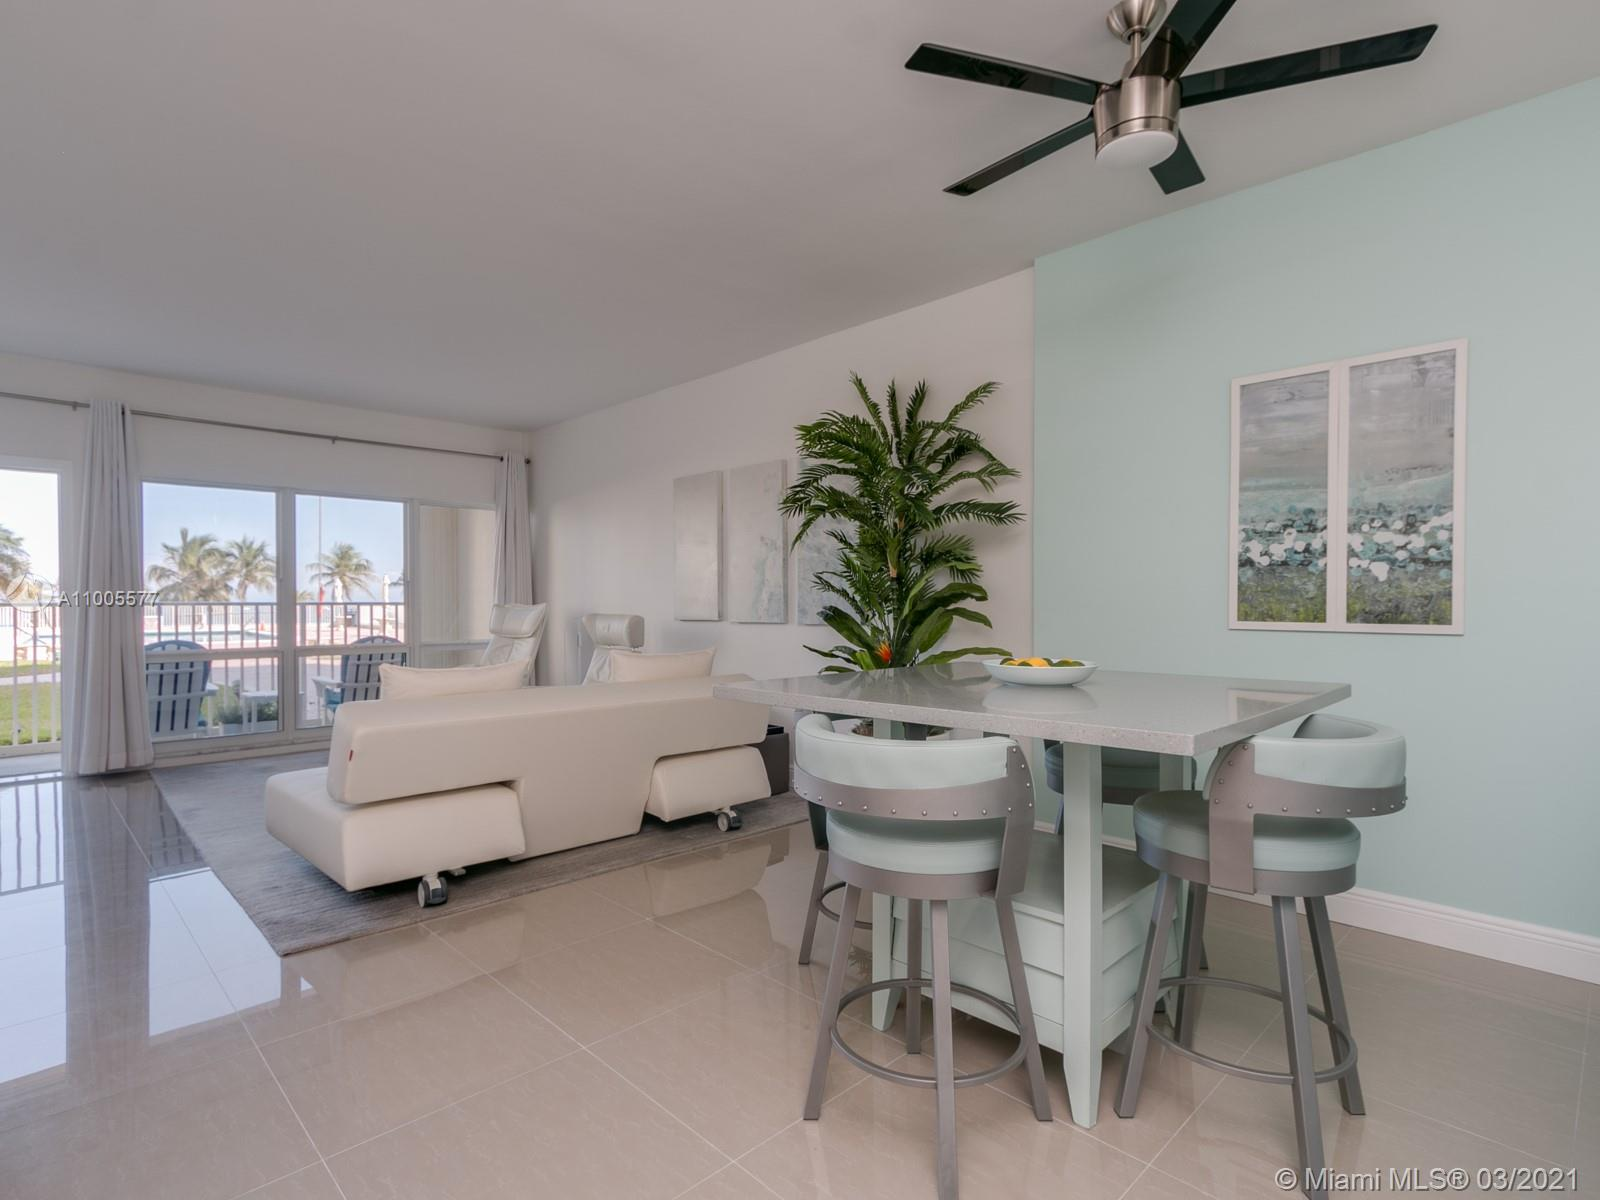 Oceanfront condo feels like a single family home. Rare opportunity to own one of only five condos with direct pool deck and beach access. Skip the elevator & lobby and step off your private patio for your morning swim or walk on the beach. Completely renovated 2019, this gorgeous 2/2 boasts 9ft ceilings, two separate BR suites with baths & walk in closets, impact windows, doors & hot water heater(2020), quartz counters, SS appliances, tile floors, wood cabinetry, new window treatments all decorated in soft, beach tones.Covered parking spot! Lobby secure bldg has 24-7 concierge, fitness center & rec rm. The building's private beach area has grills, lounges and tables for the exclusive use of Admiralty owners. Close to dining, entertainment & shopping. Carefree beach living at it's finest!